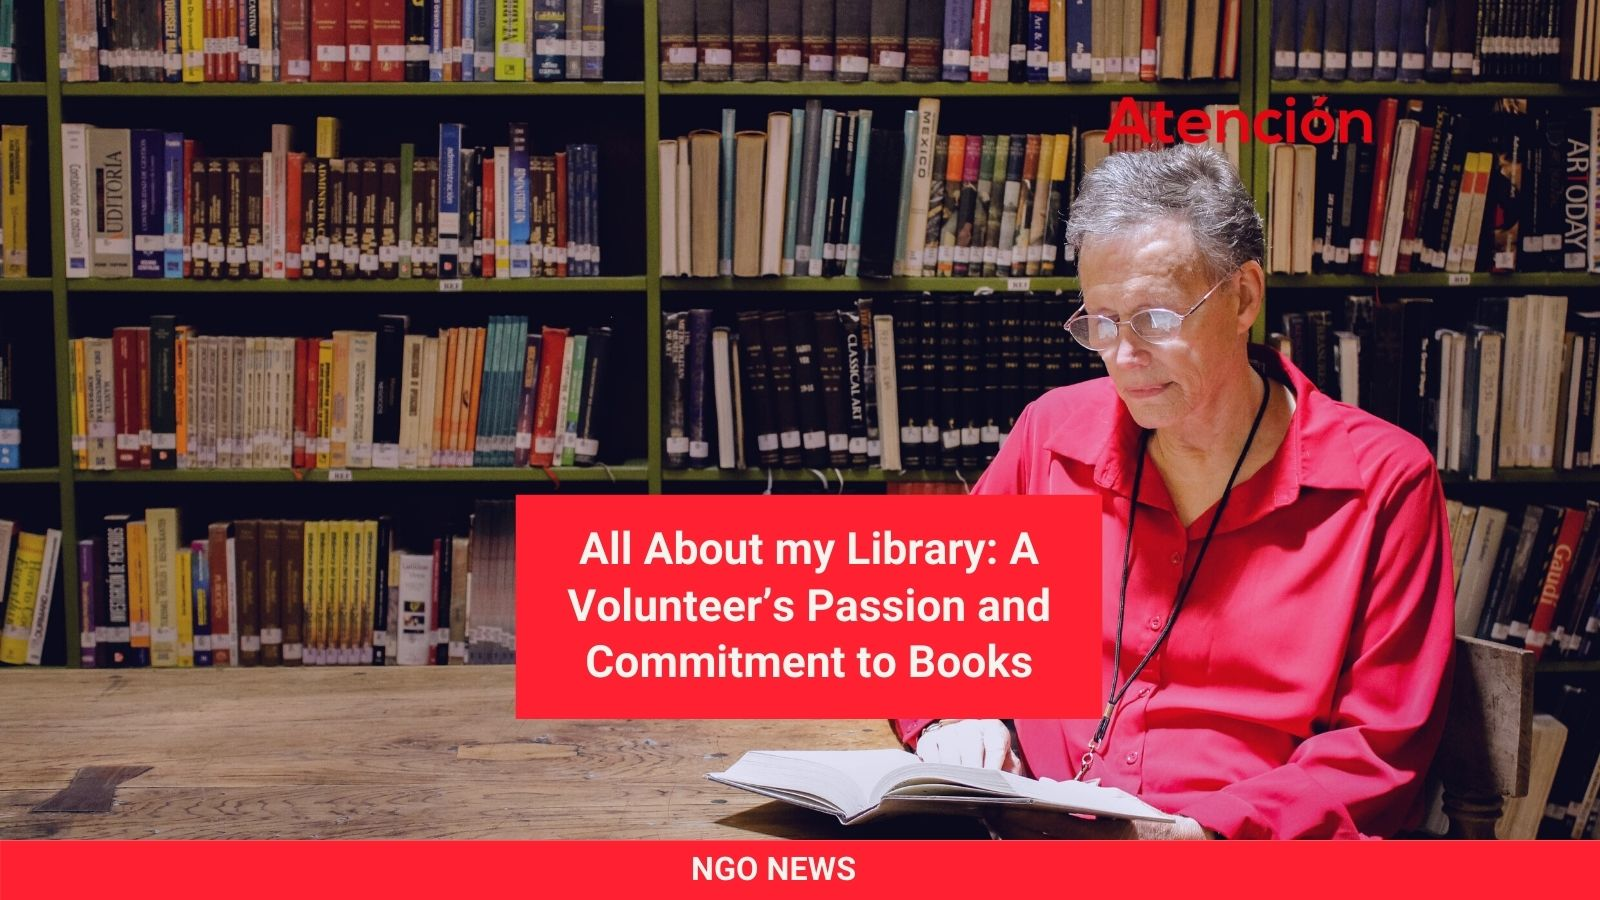 All-About-my-Library_-A-Volunteers-Passion-and-Commitment-to-Books.jpg